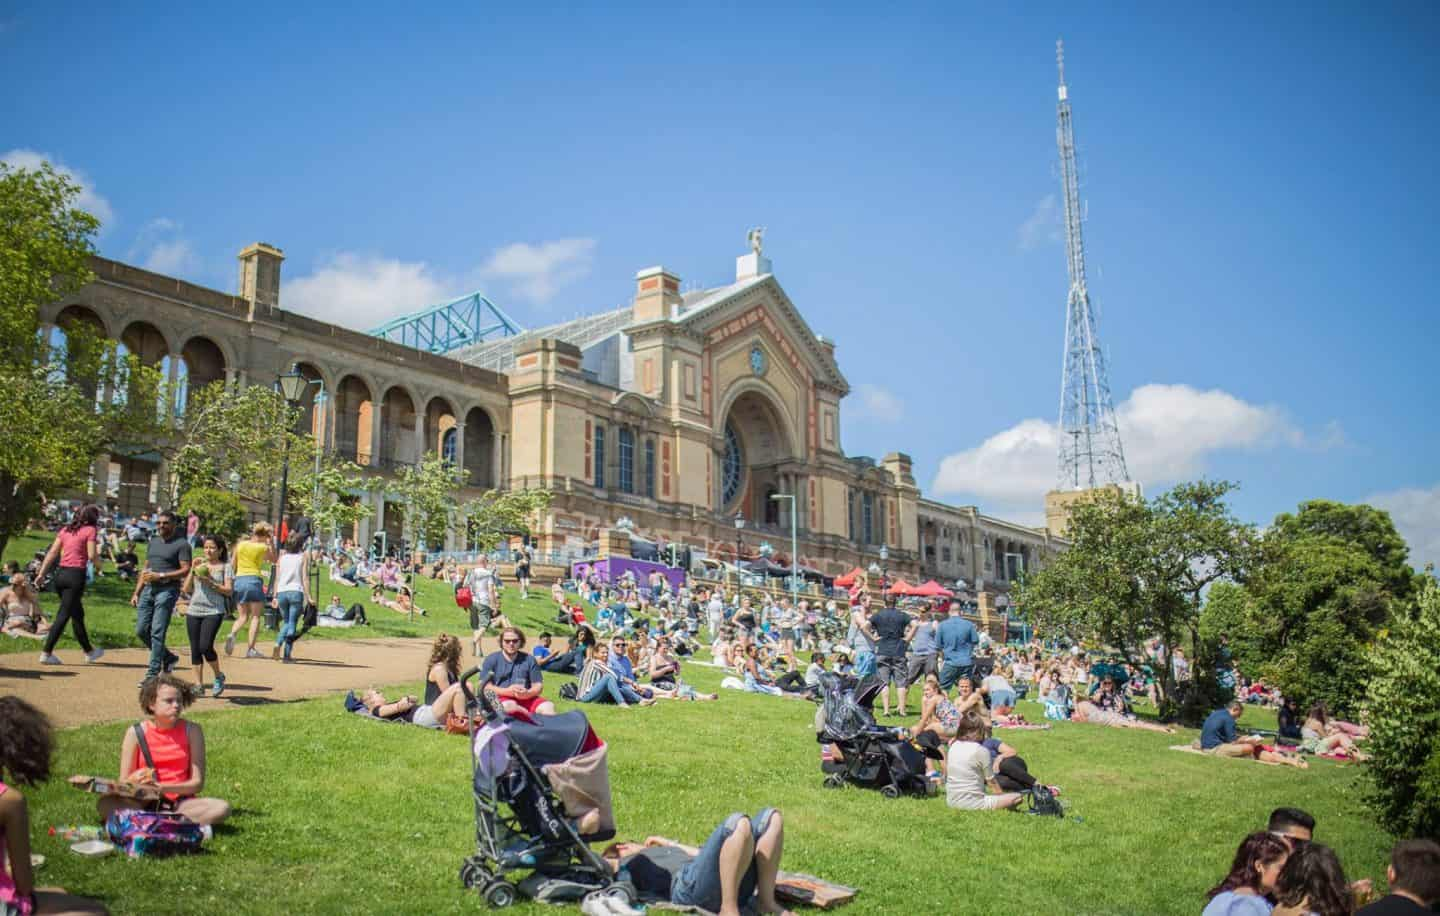 The Best Dog-friendly Festivals in London And Nearby - The Great Fete Alexandra Palace